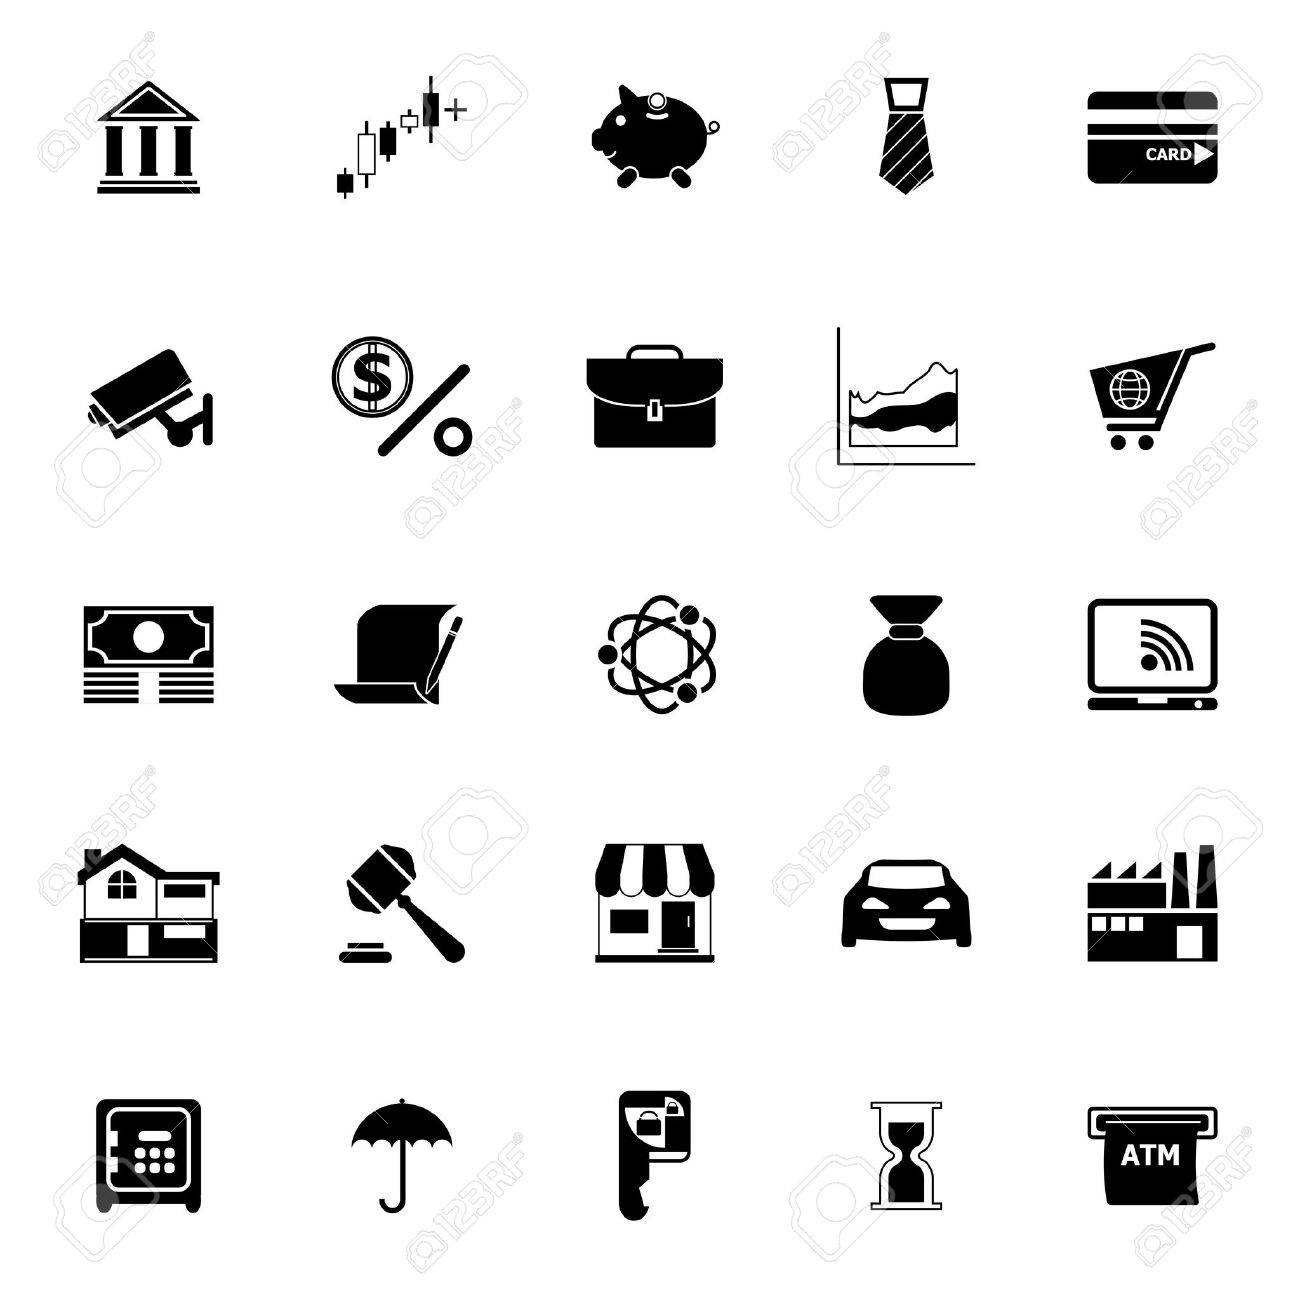 Banking and financial icons on white background, stock vector - 38687496